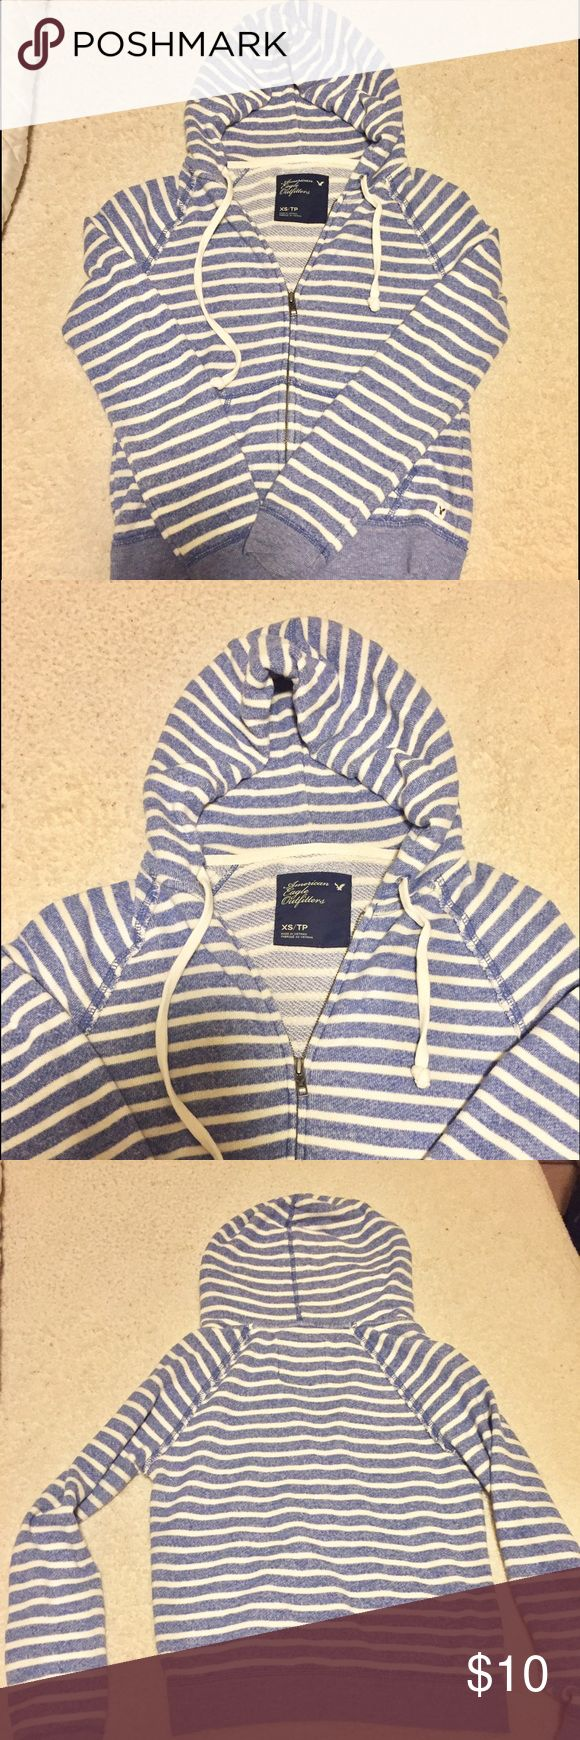 American Eagle blue striped zip-up hoodie American Eagle striped blue and white zip up hoodie.m with pockets. Very soft and comfortable! American Eagle Outfitters Tops Sweatshirts & Hoodies